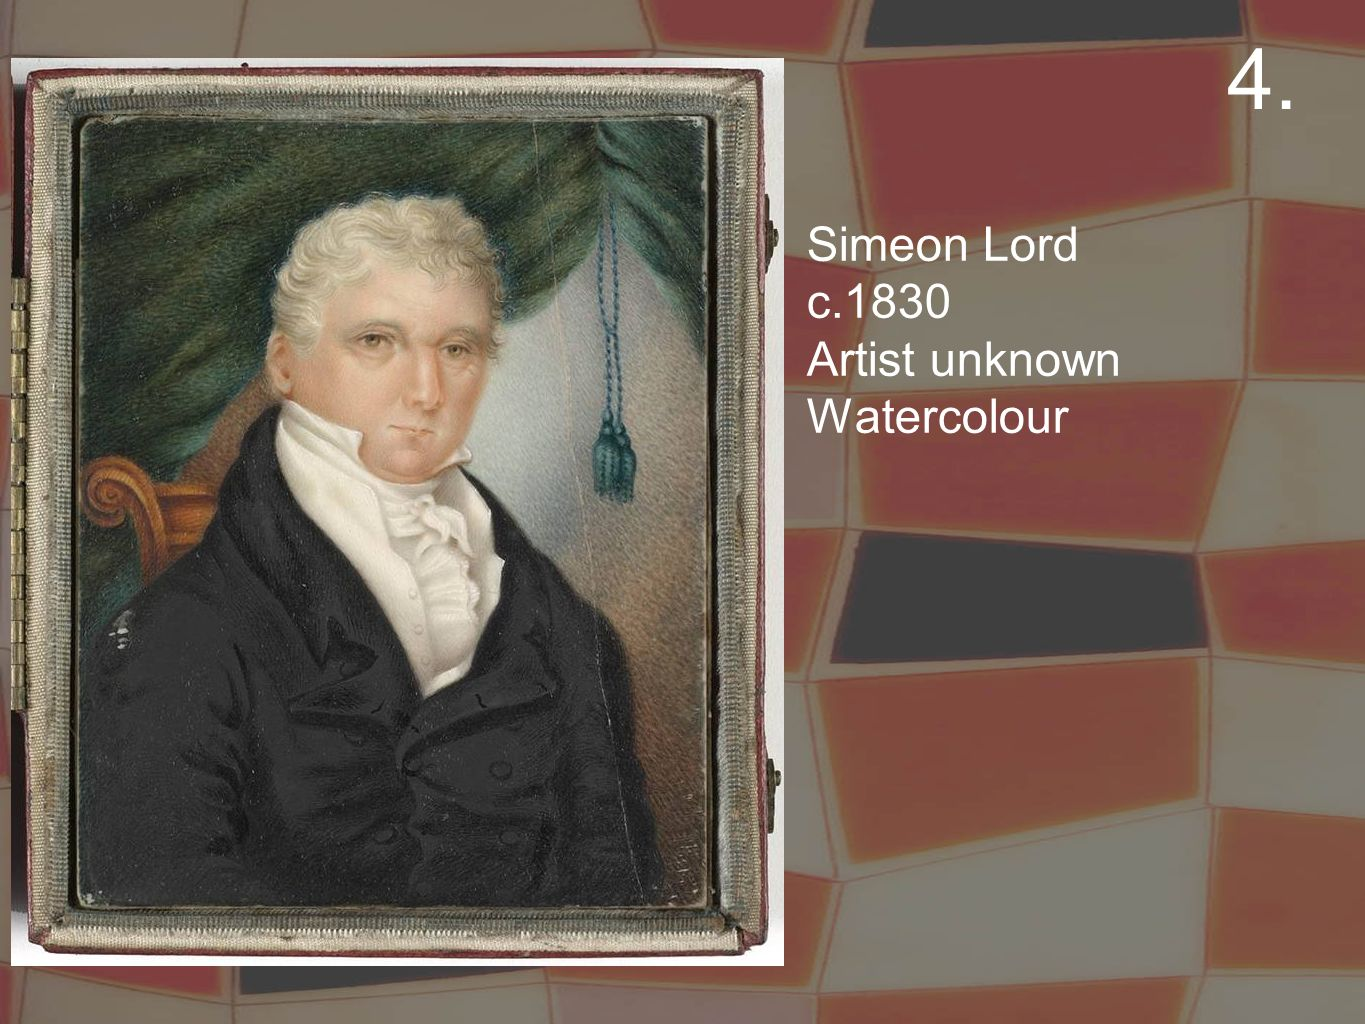 Simeon Lord c.1830 Artist unknown Watercolour 4.